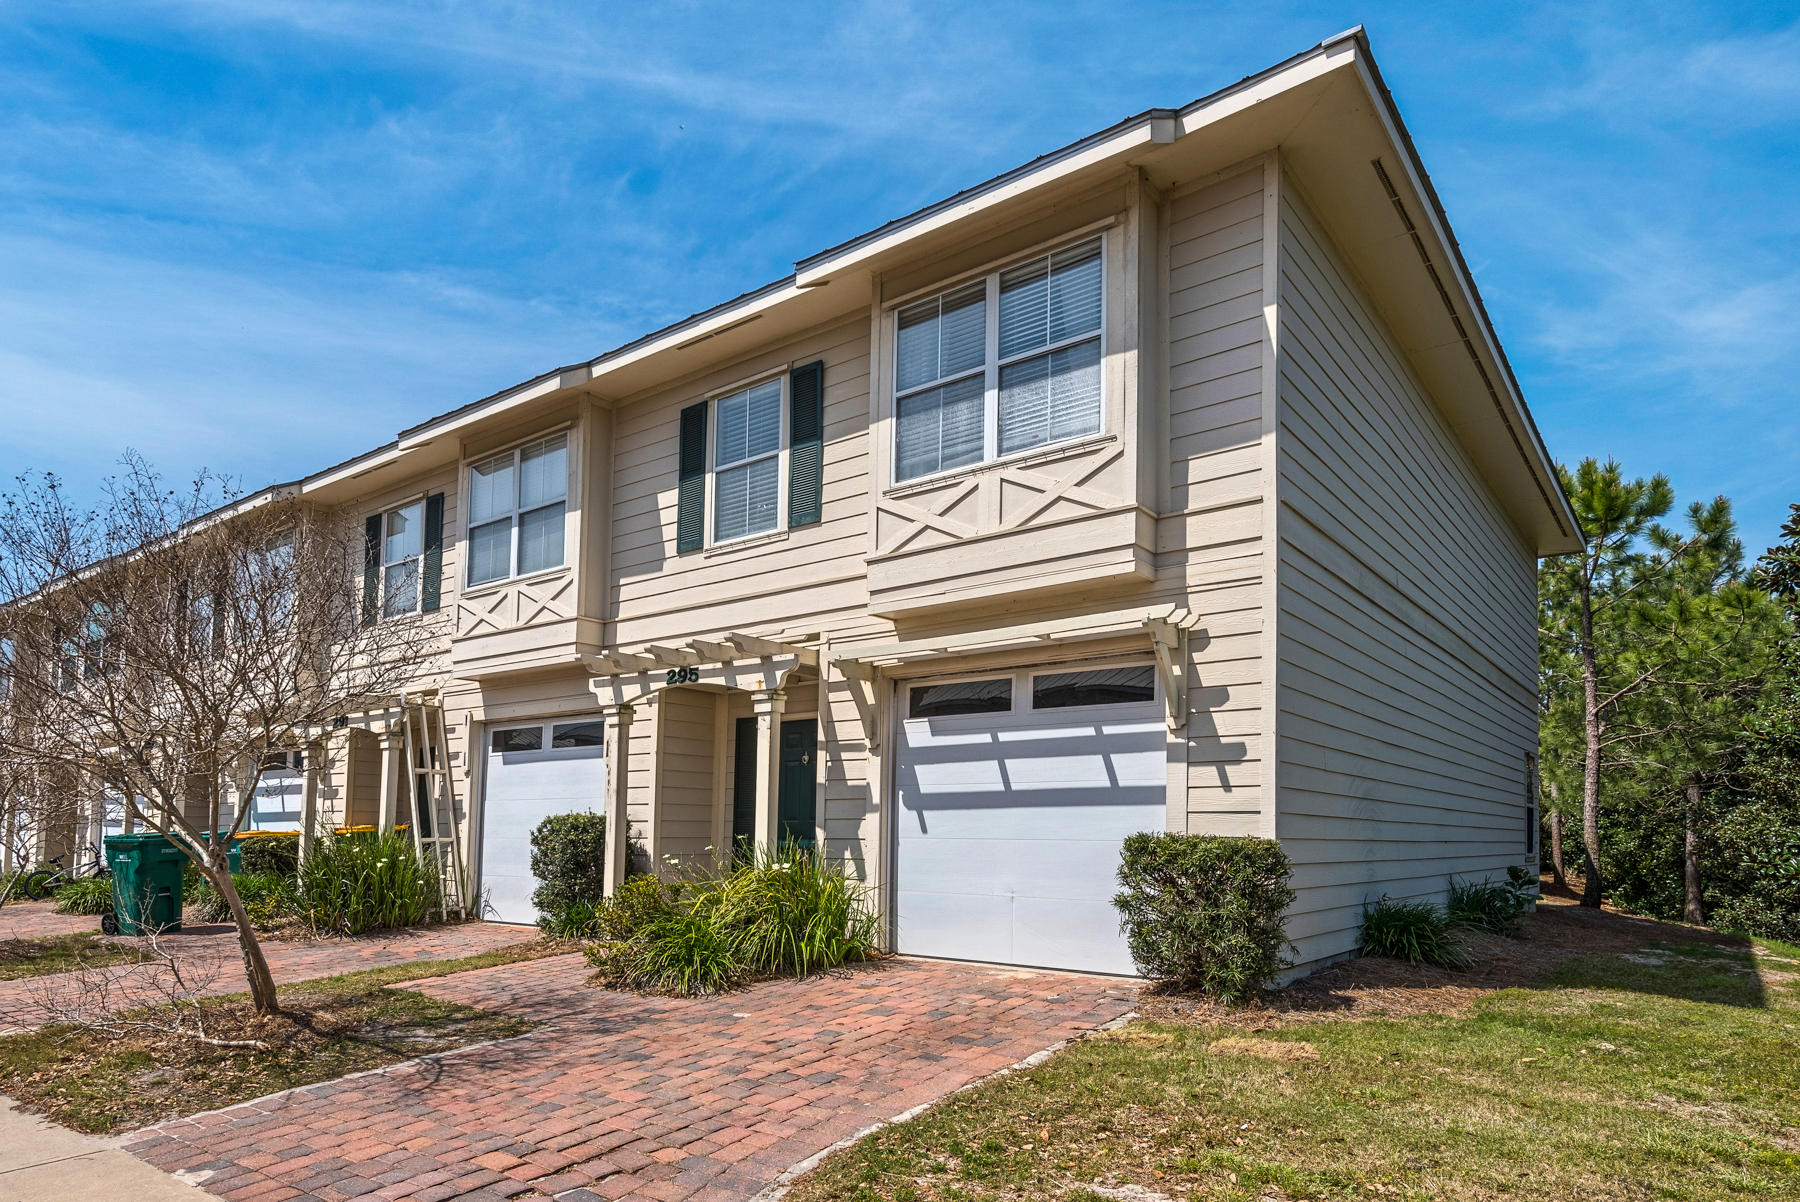 LOCATION, Location, location! This beautiful and low maintenance end unit townhome is centrally located in the HEART of Destin and in the upscale townhome community of Old Bay Village! Enjoy 3 bedrooms, 2.5 baths, granite countertops in the kitchen, 1 car garage, and brick paver driveway. The first floor features the foyer, half bath, kitchen and living areas, as well as french doors leading to the spacious & covered exterior patio! On the second floor, you will find all 3 bedrooms and both full size bathrooms. From the sugar white sand beaches of the Emerald Coast to a plethora of GREAT shopping & dining experiences, Old Bay Village townhomes is conveniently located to all that Destin has to offer. This end unit offers lots of privacy and would make a great primary residence, second home, or long term rental investment property with an existing Tenant already occupying the property until 7/31/19. Call us today to arrange your private showing or with any questions!